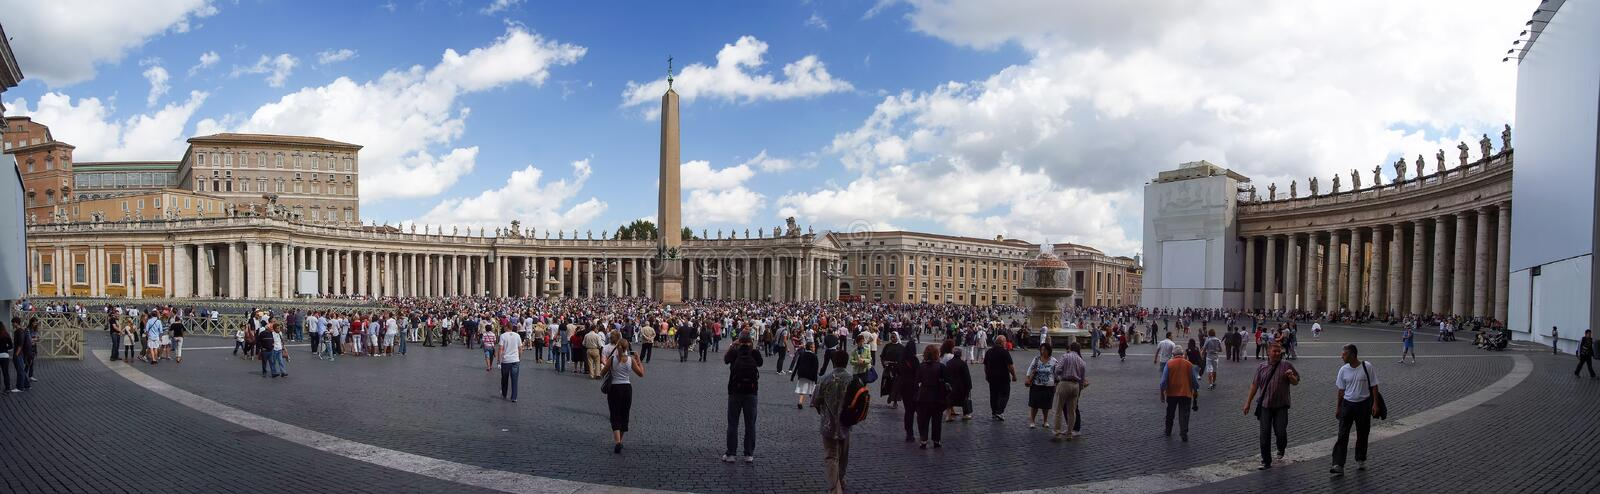 Tourists on central square. Vatican City, Vatican - April 10, 2010: tourists on central square Piazza San Pietro of city or capital with colonnades, obelisk and royalty free stock images